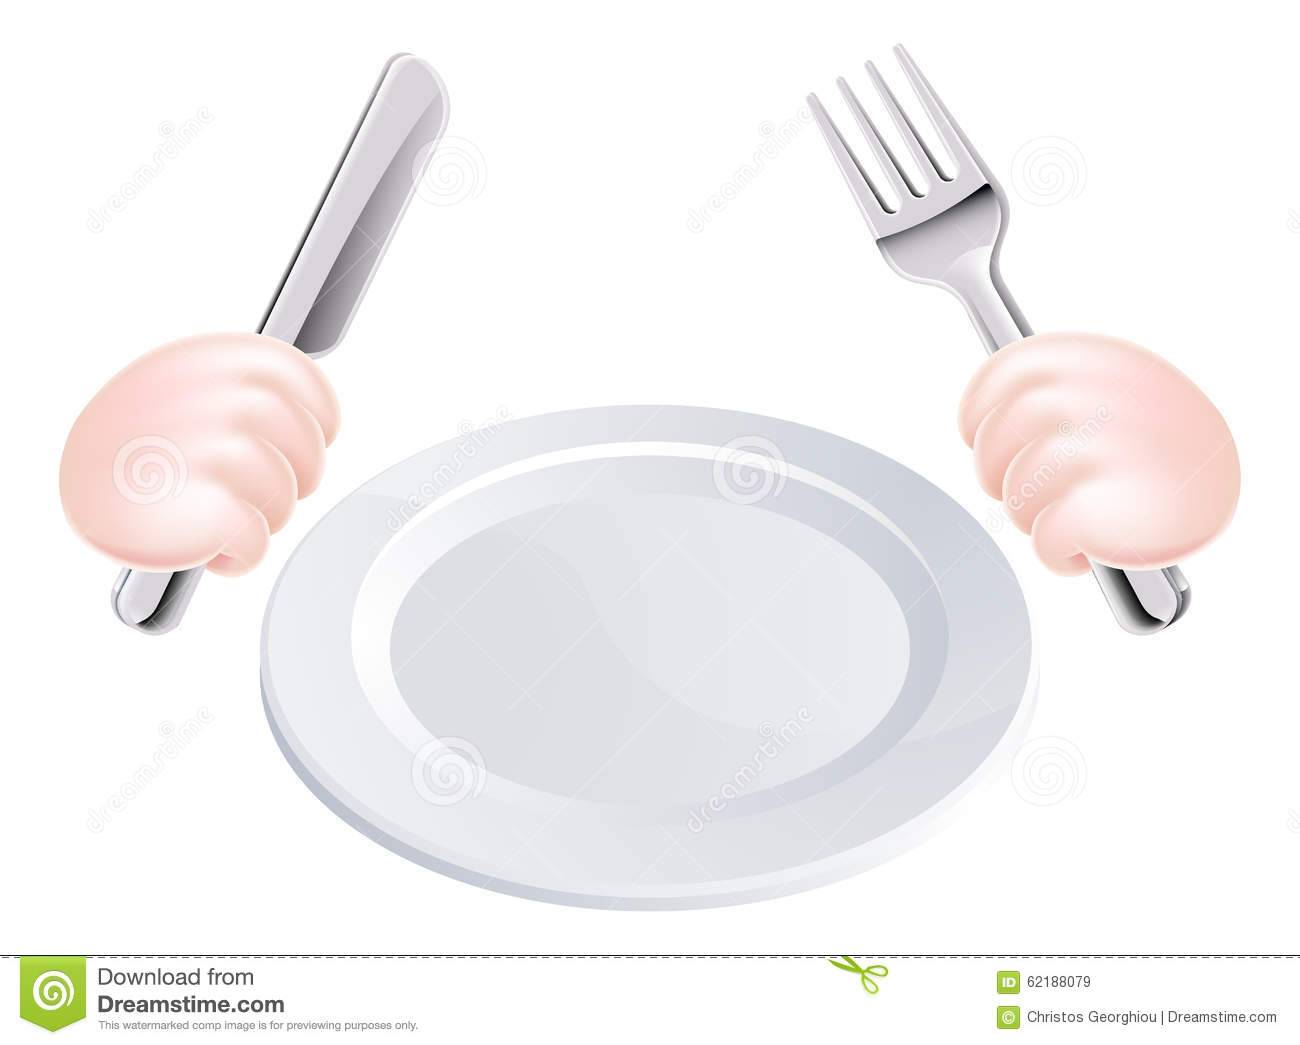 Hands Knife And Fork With Plate Stock Vector - Image: 62188079 Table Knife Clipart